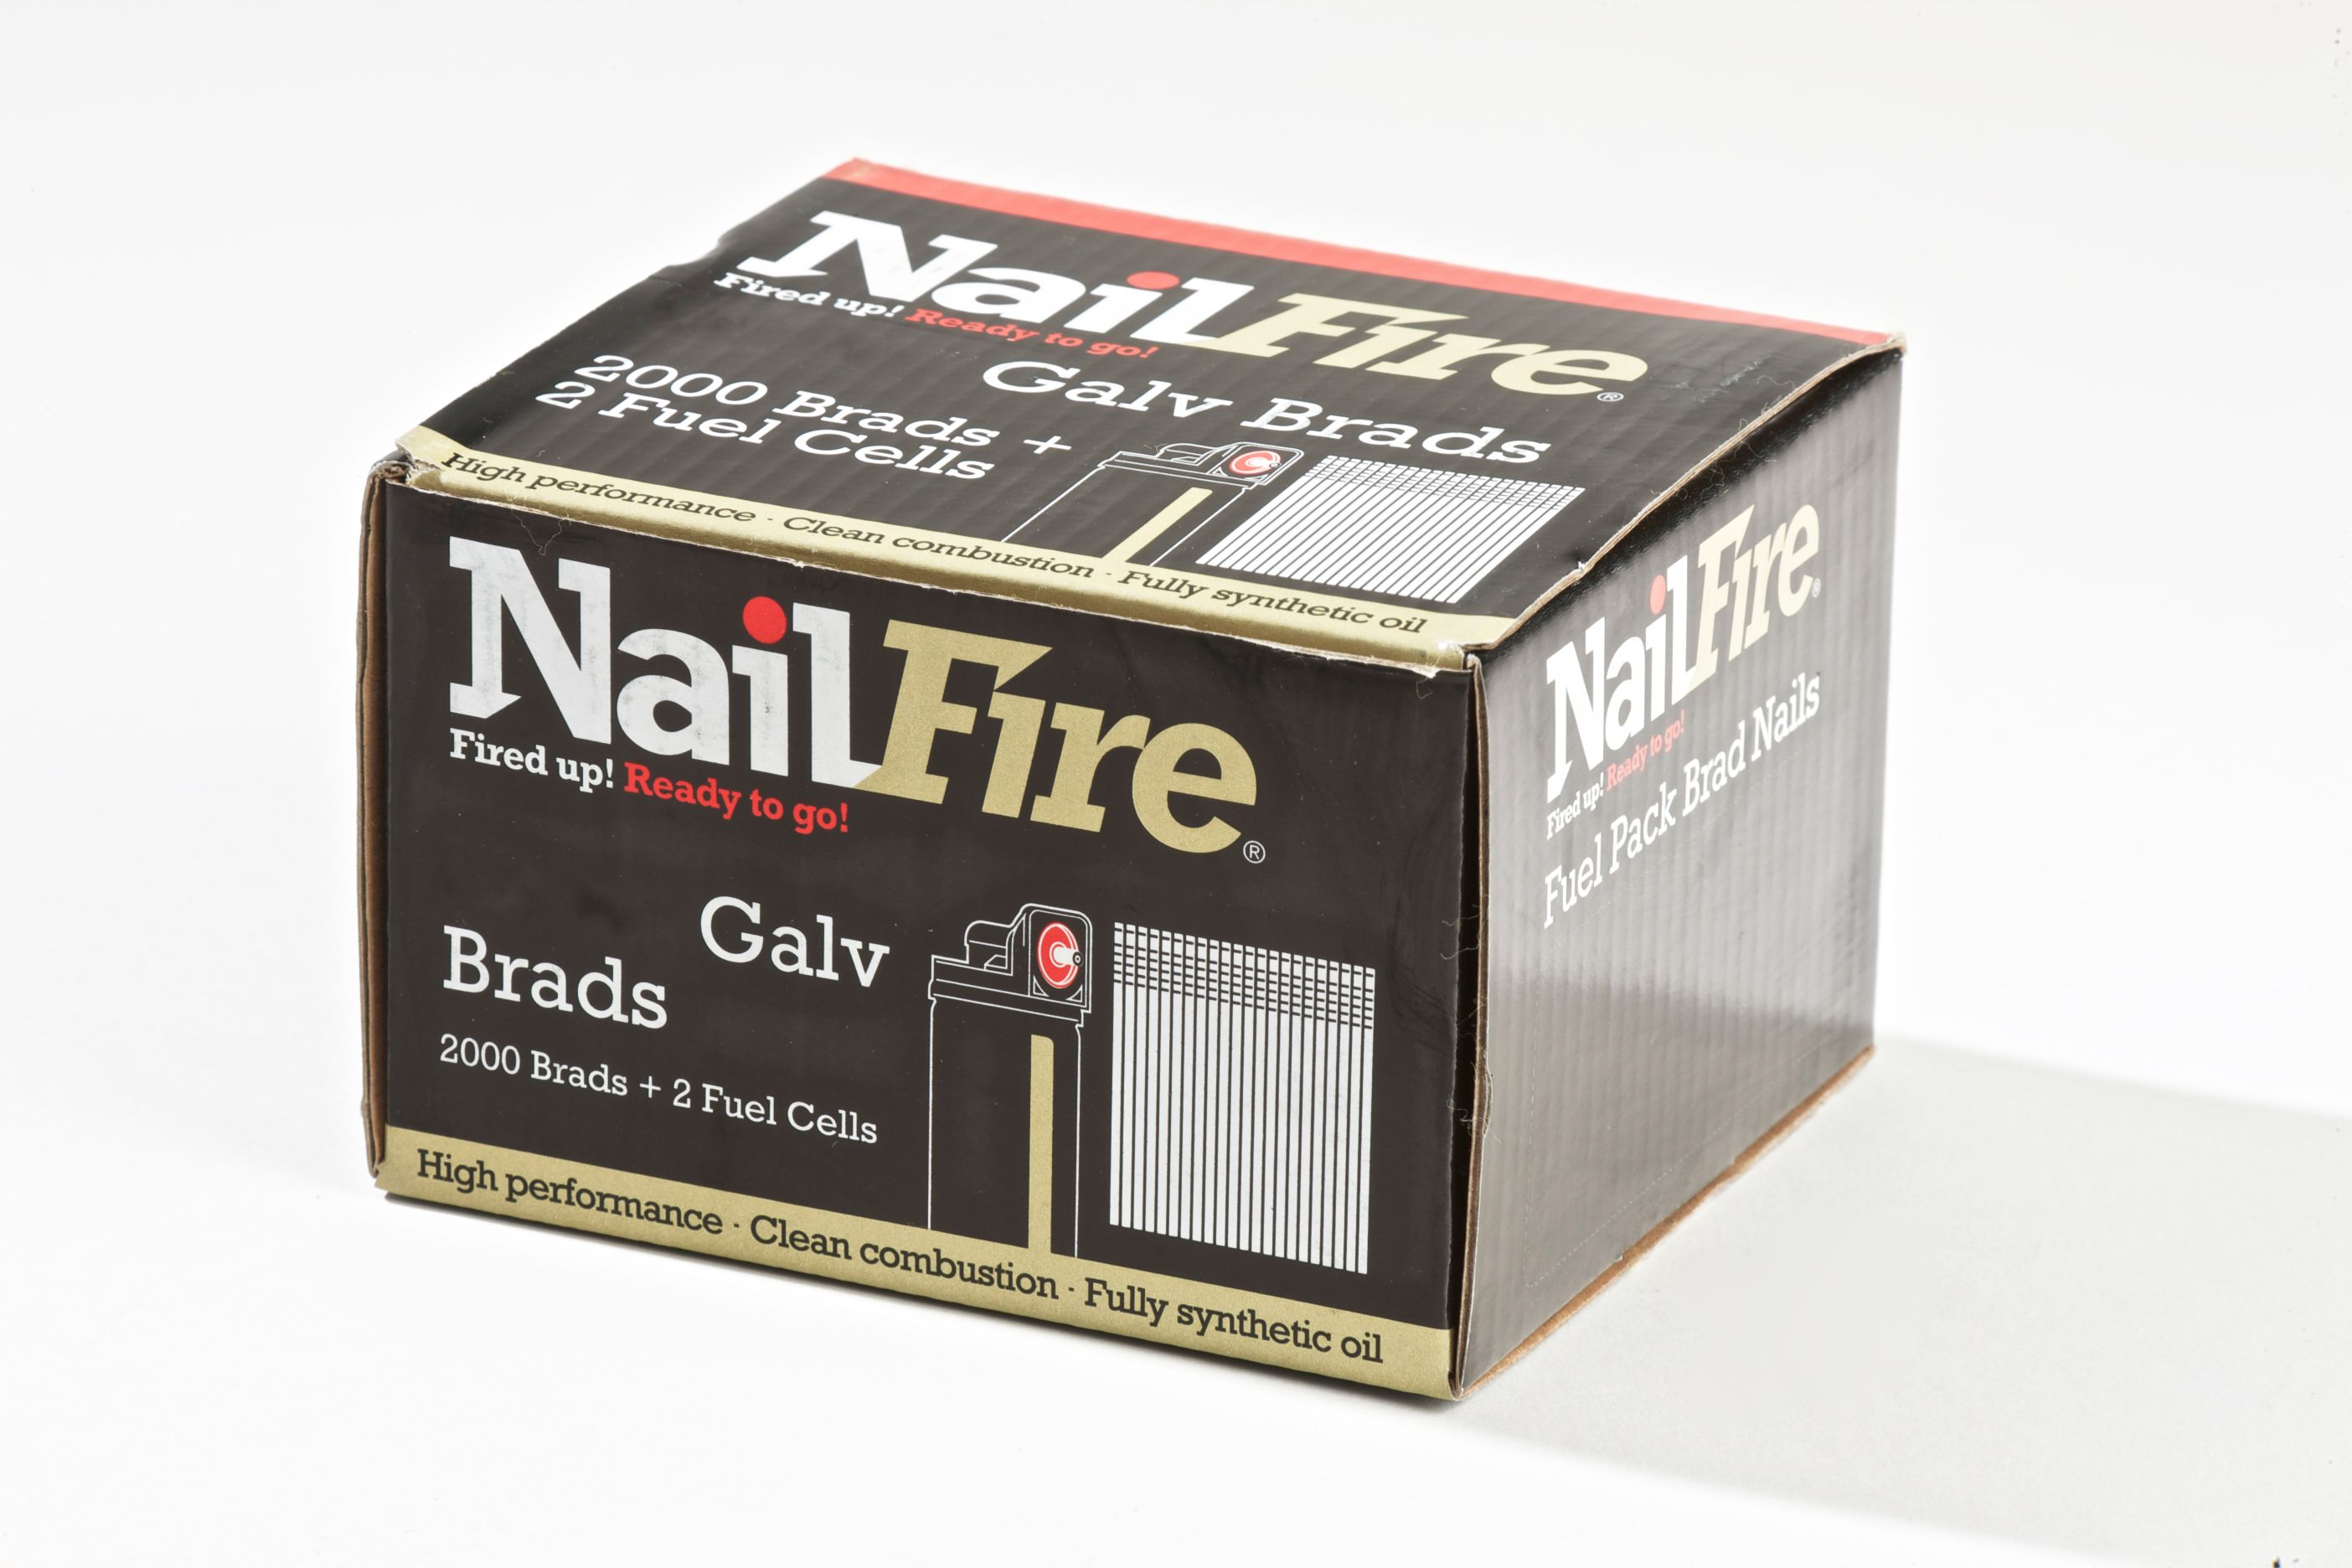 NAILFIRE 2ND FIX STRAIGHT E-GALV BRAD & FUEL PACK 38MM (TUB OF 2000)